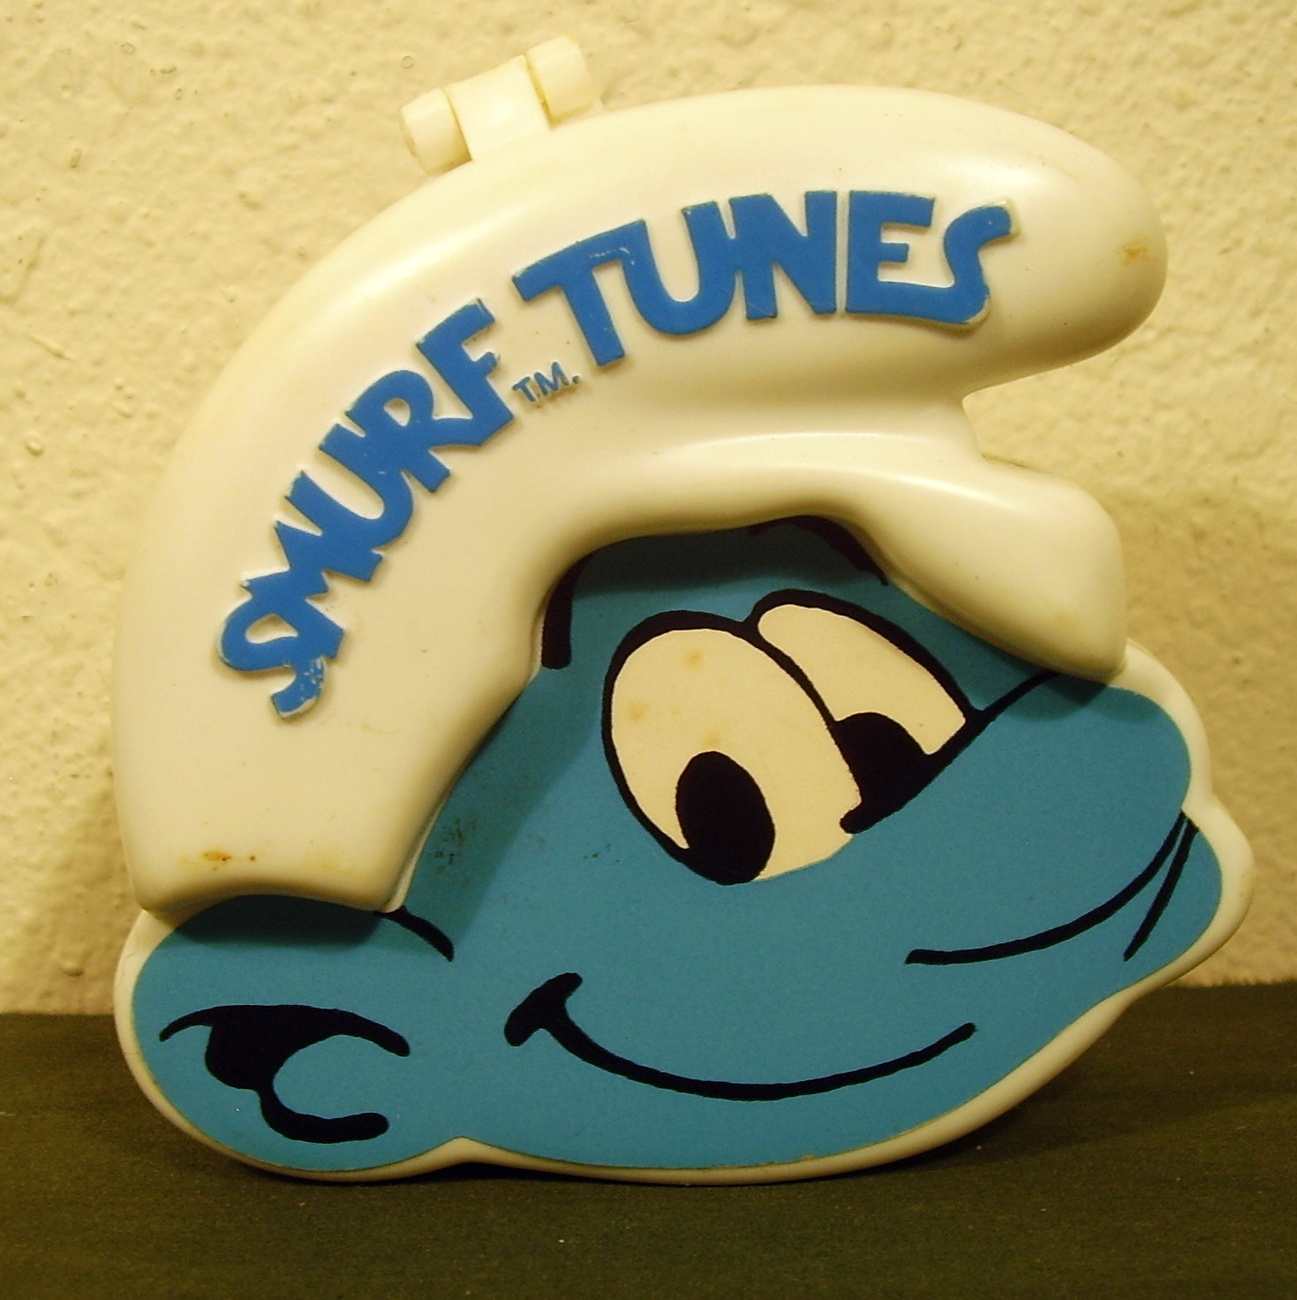 Smurf Tunes Electronic Musical Toy by Galoob 1982